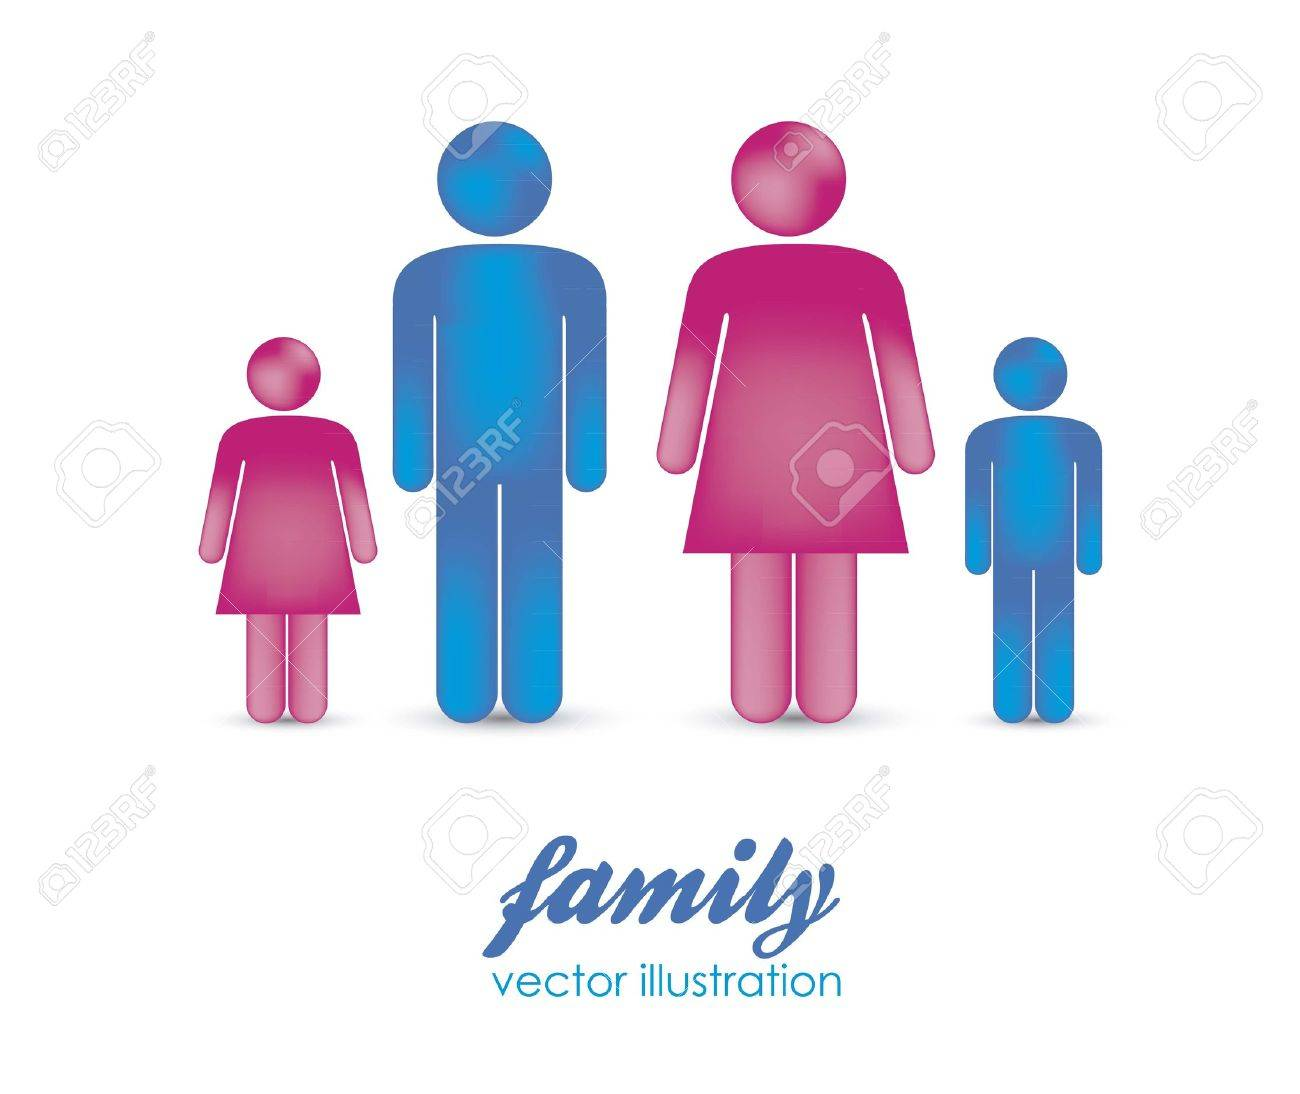 Illustration of silhouettes of people that make a family, vector illustration Stock Vector - 15271563